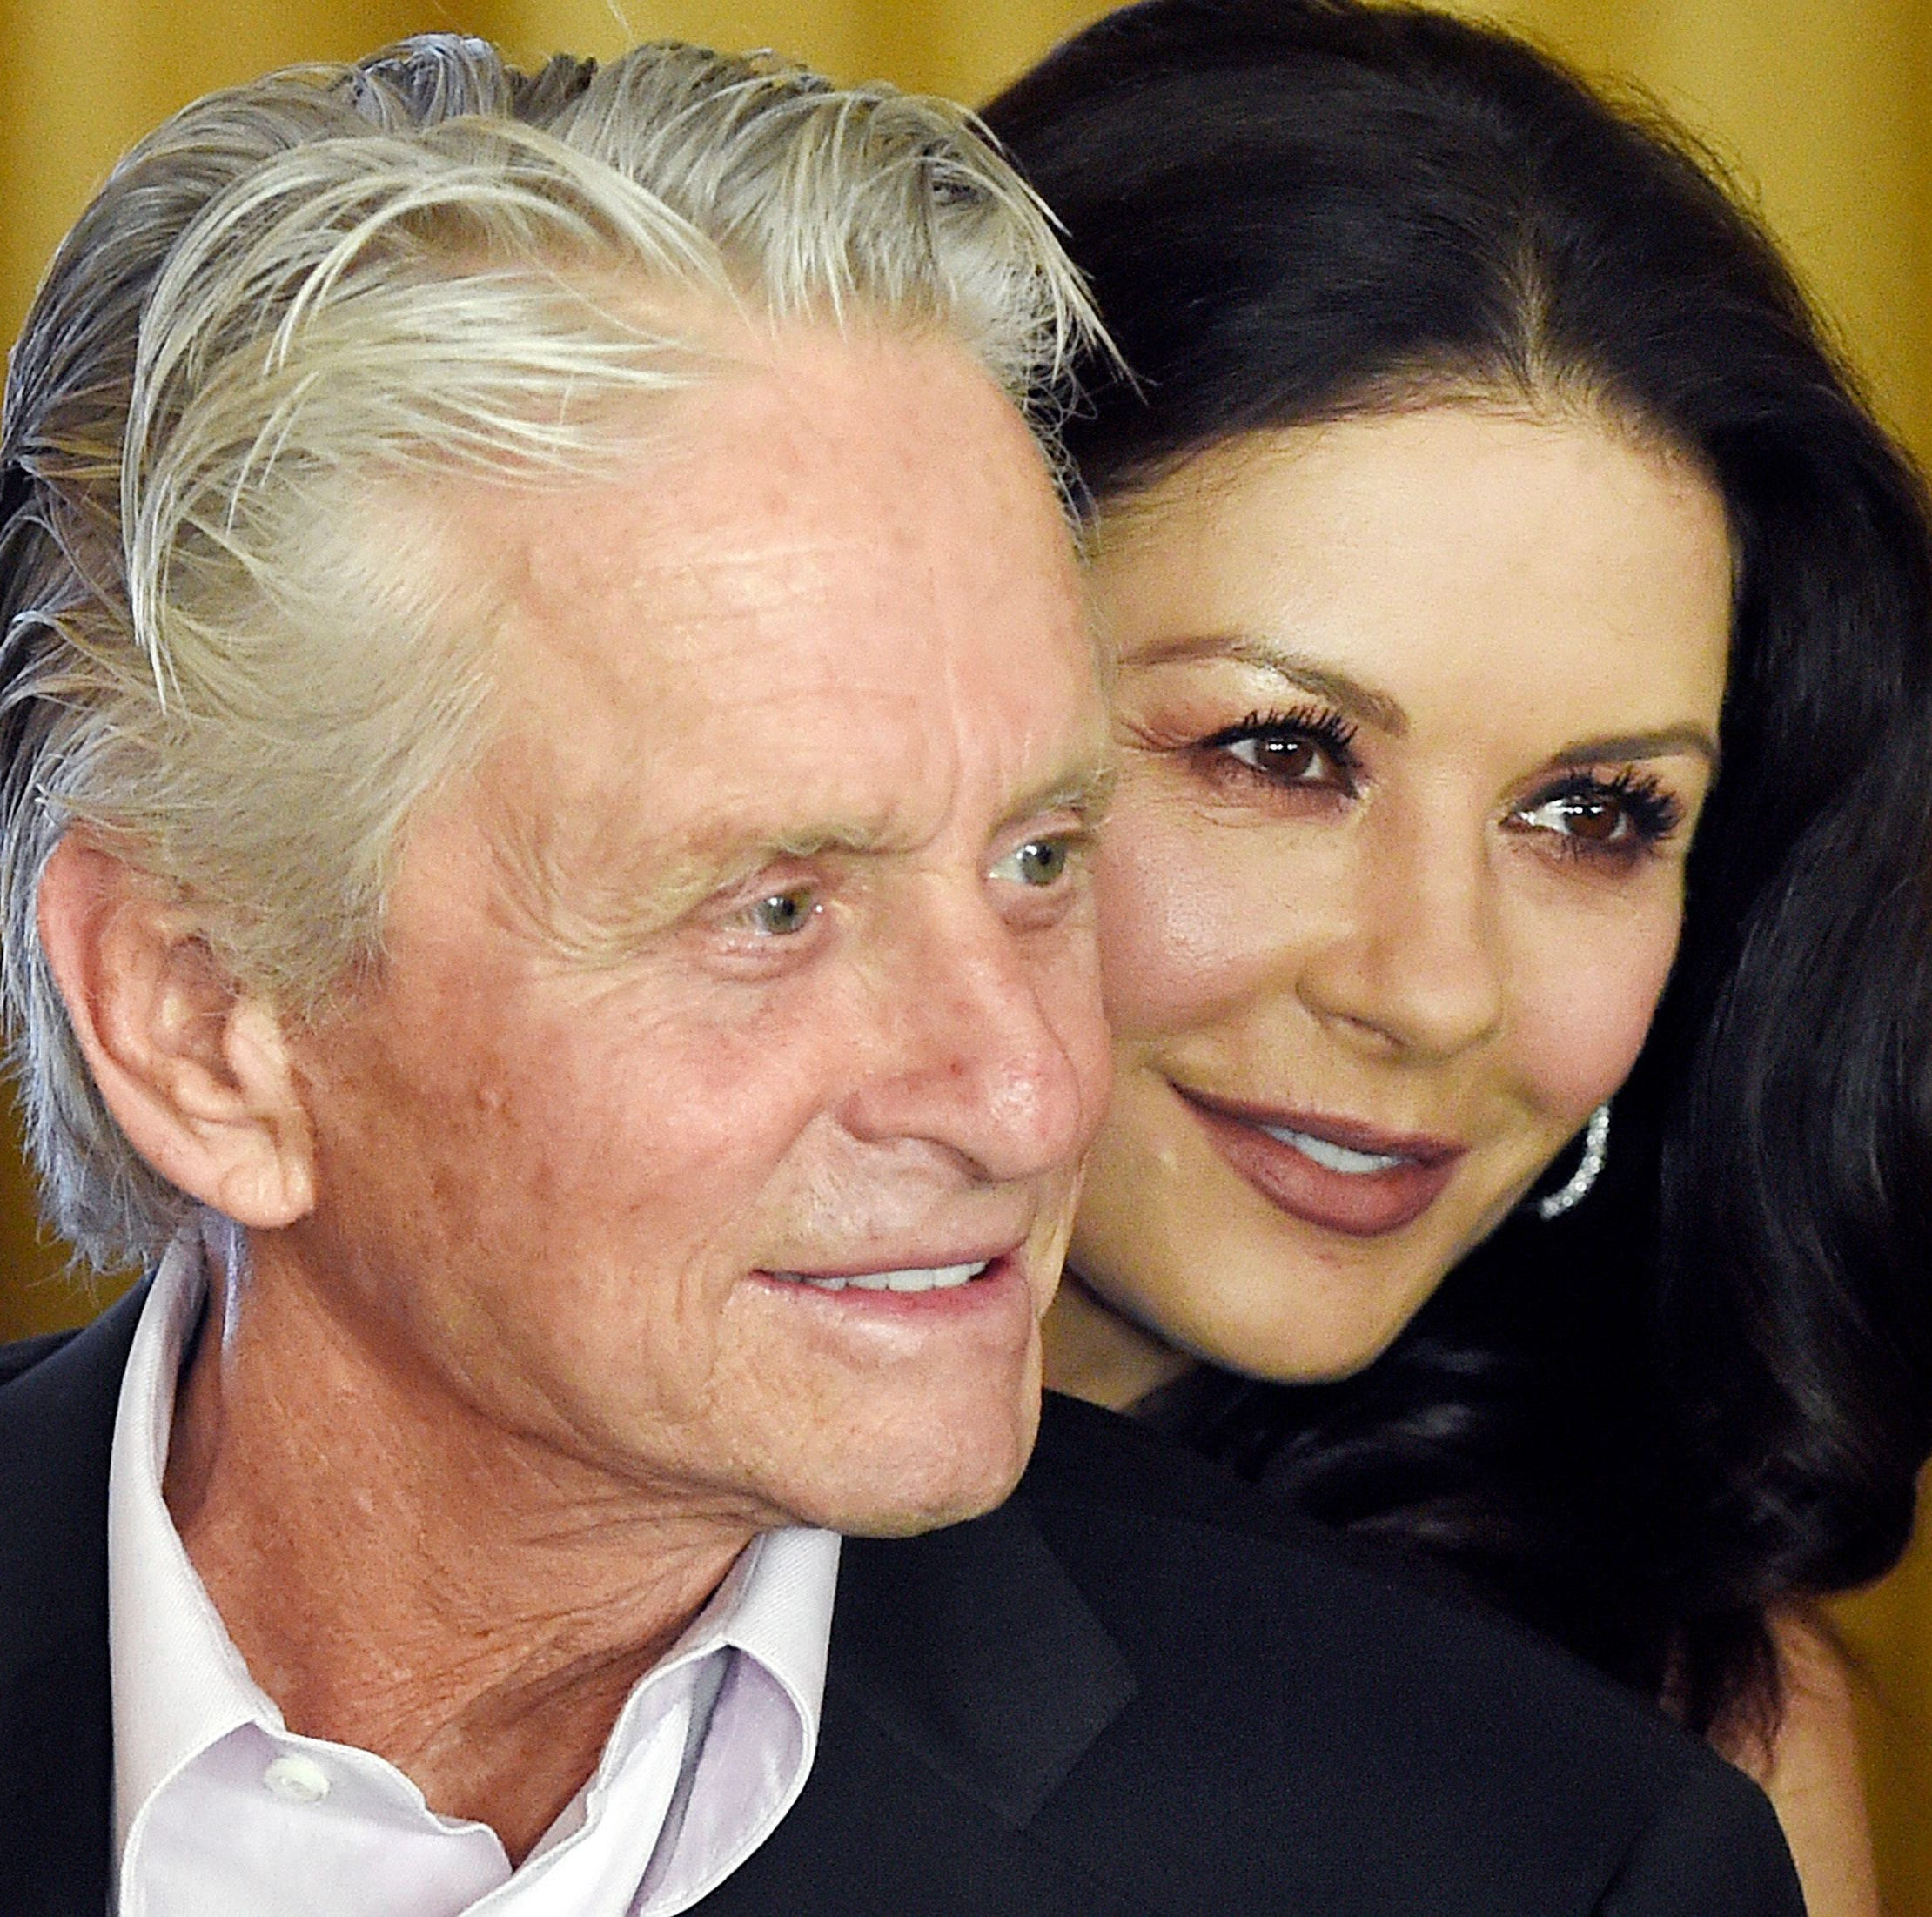 Catherine Zeta Jones and Michael Douglas bid their son an emotional farewell as they moved him into a college dorm in an Instagram video.